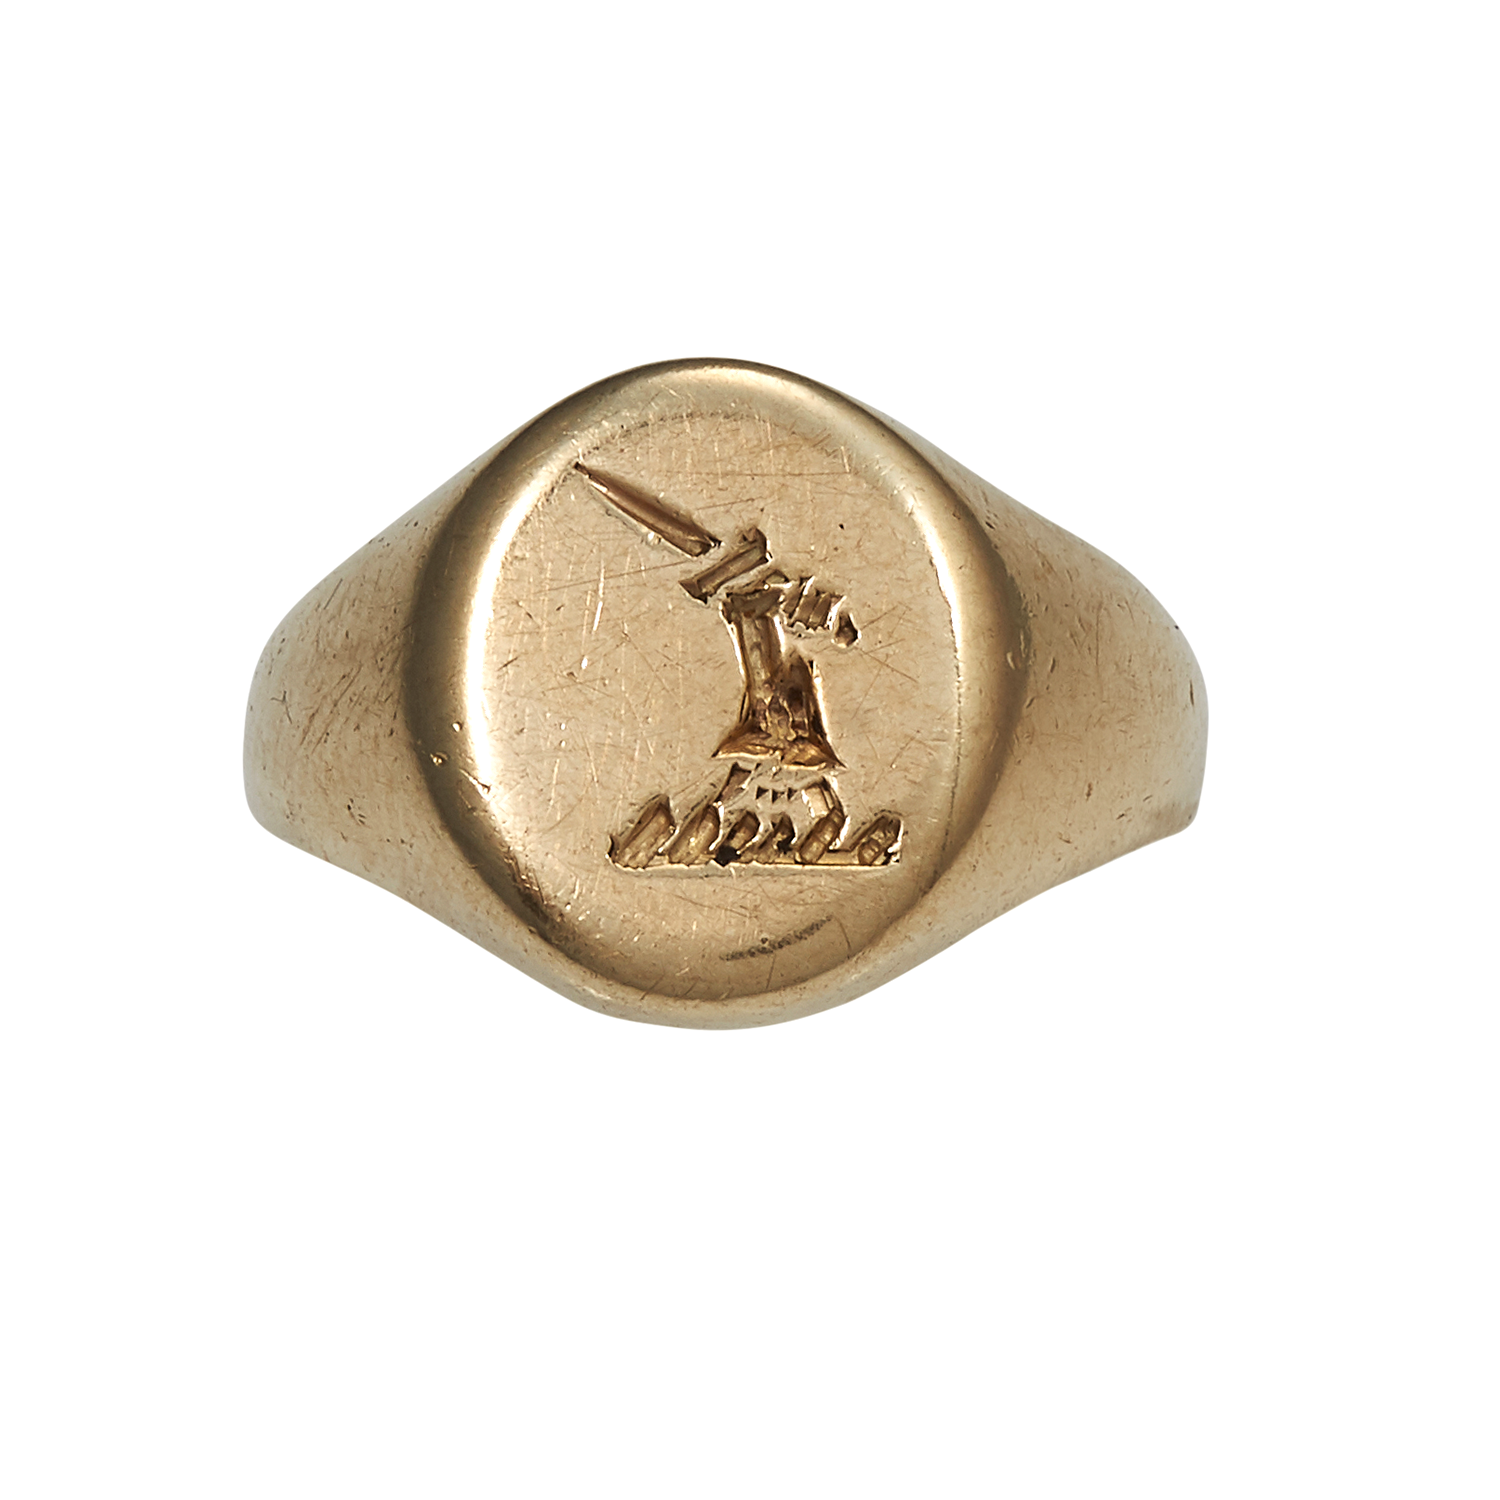 Los 18 - AN ANTIQUE INTAGLIO SIGNET RING in yellow gold, the oval face with engraved heraldic crest, size L /